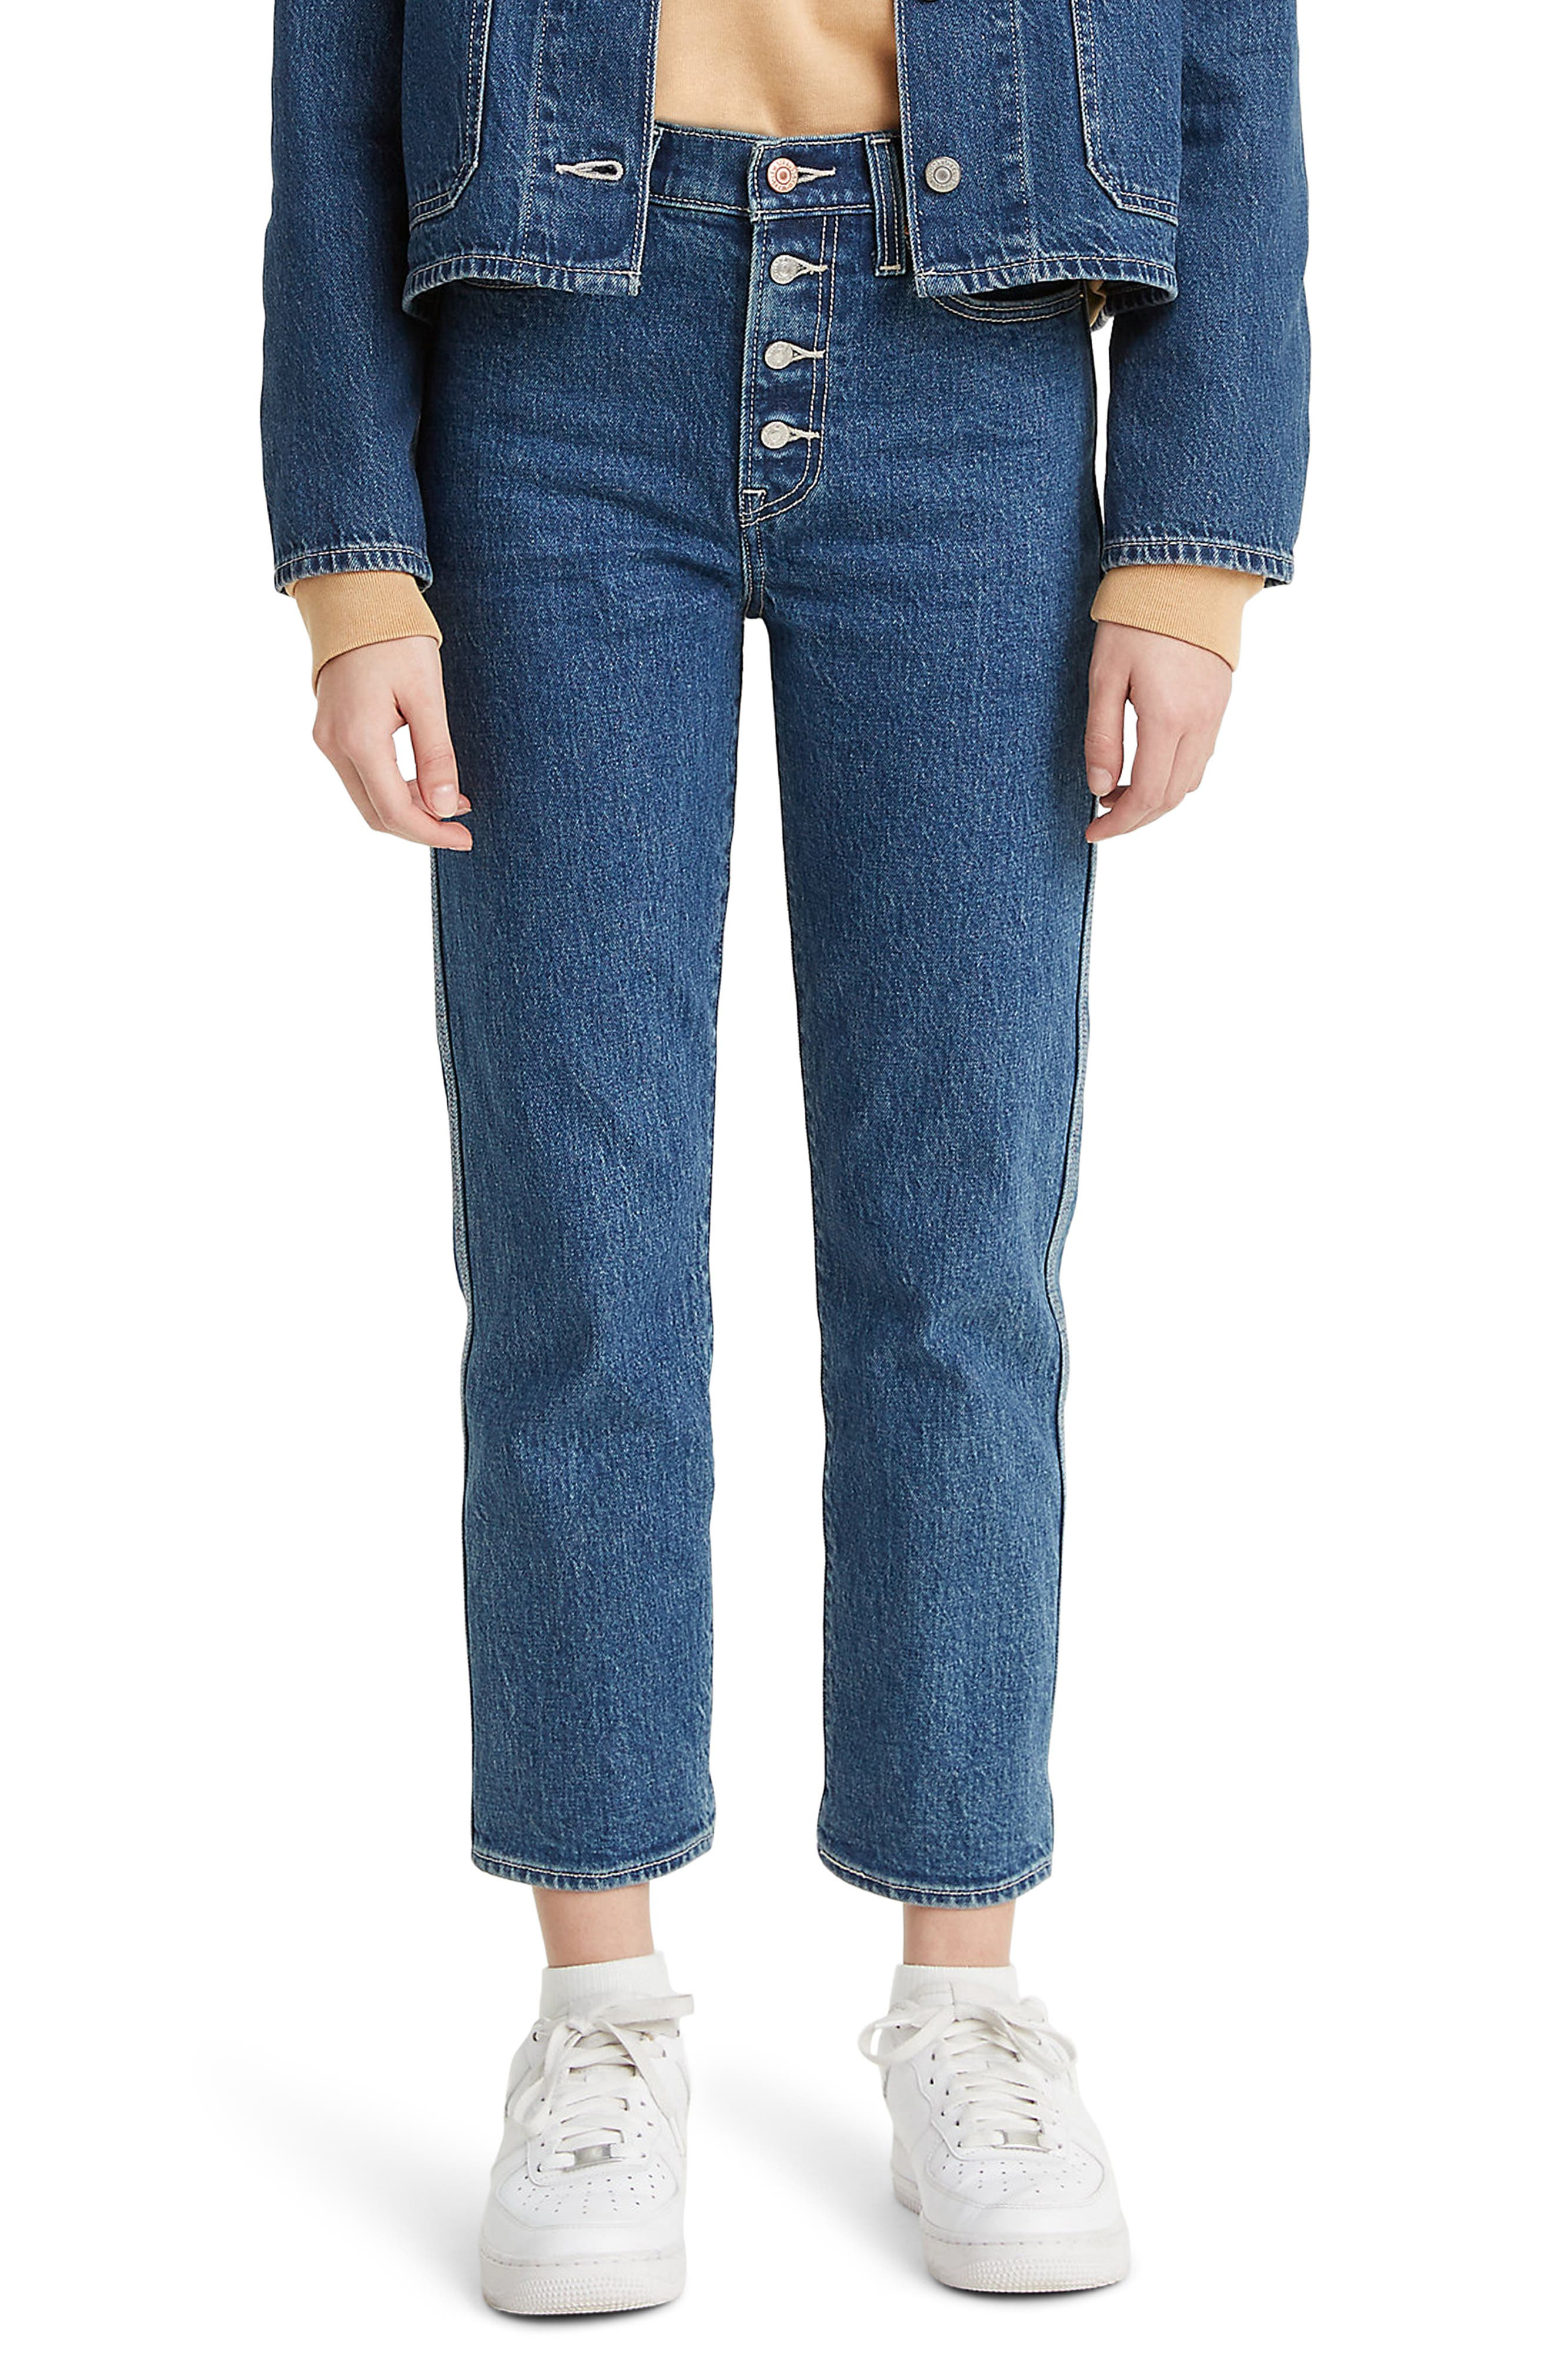 Levi's® Wedgie High Waist Crop Straight Leg Jeans (Middle Sister)   Nordstrom